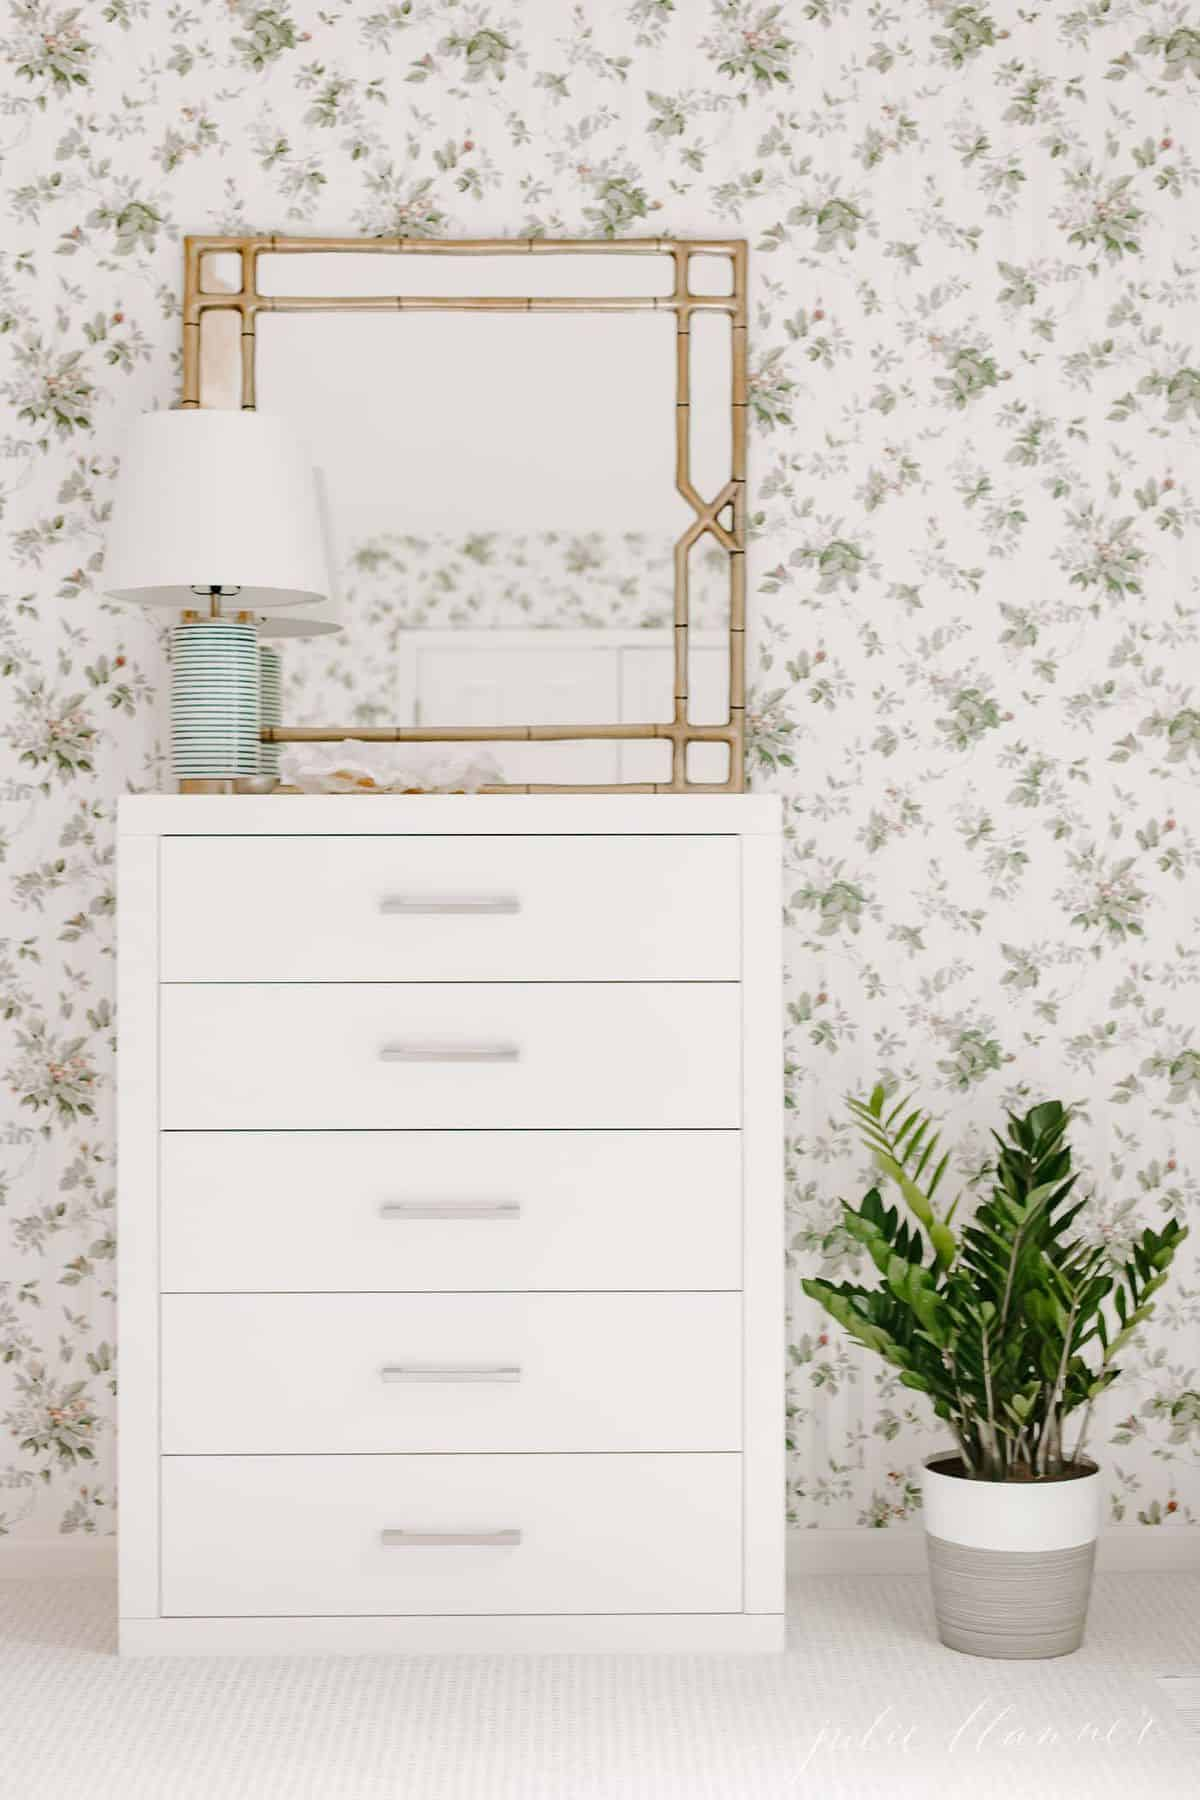 Floral wallpapered bedroom, with a modern white dresser and gold mirror, Zamioculcas Zamiifolia on the floor beside dresser